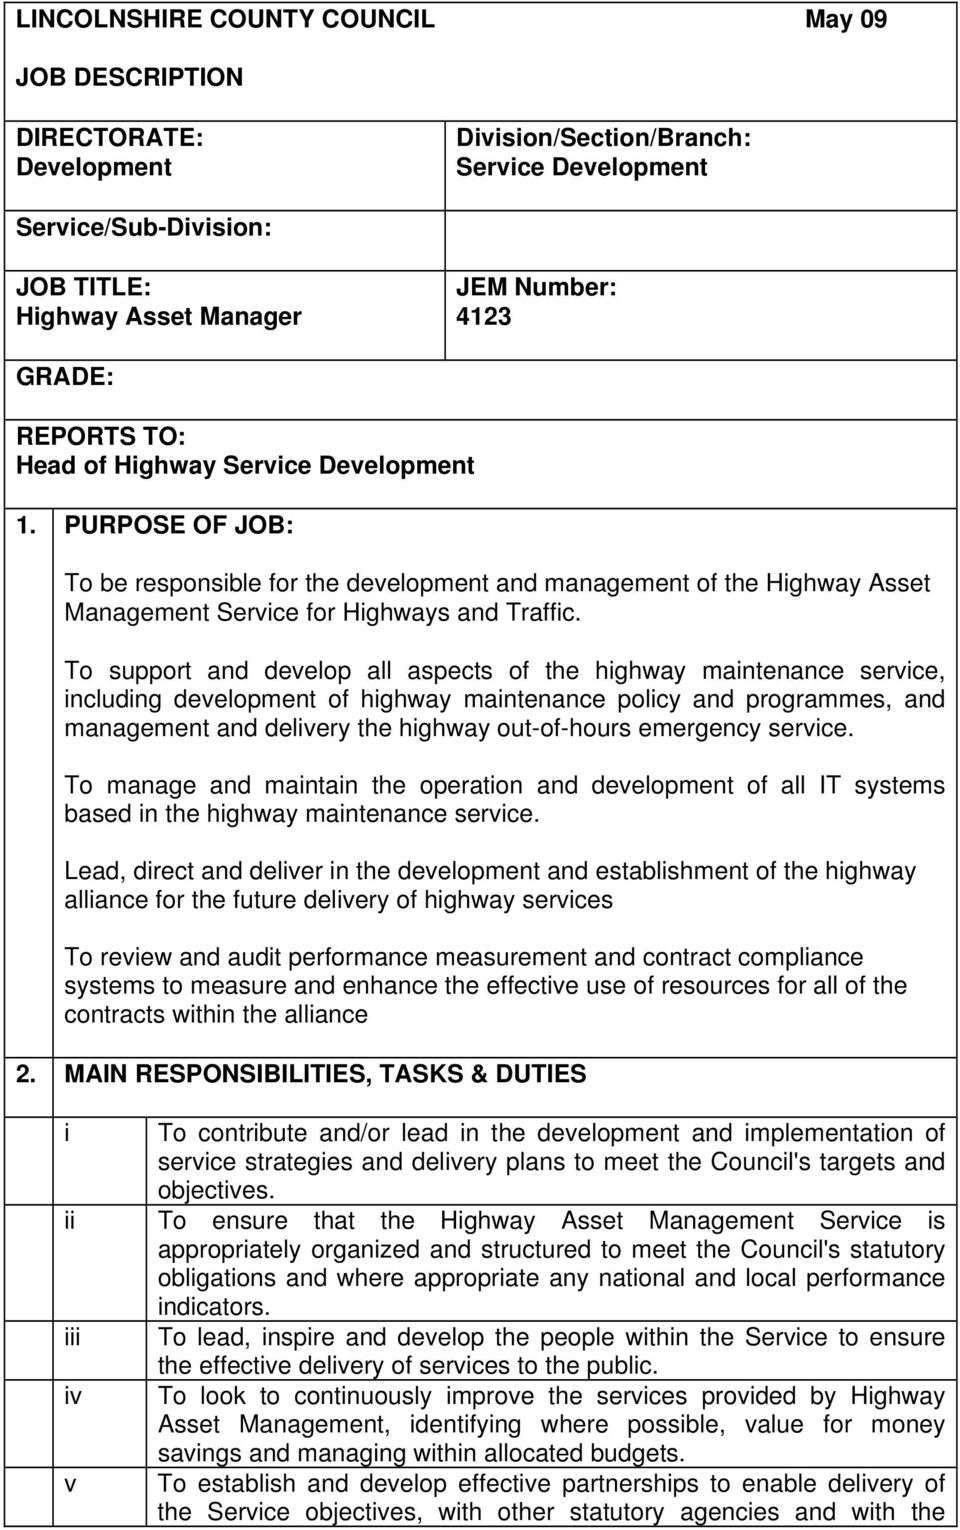 To support and develop all aspects of the highway maintenance service, including development of highway maintenance policy and programmes, and management and delivery the highway out-of-hours